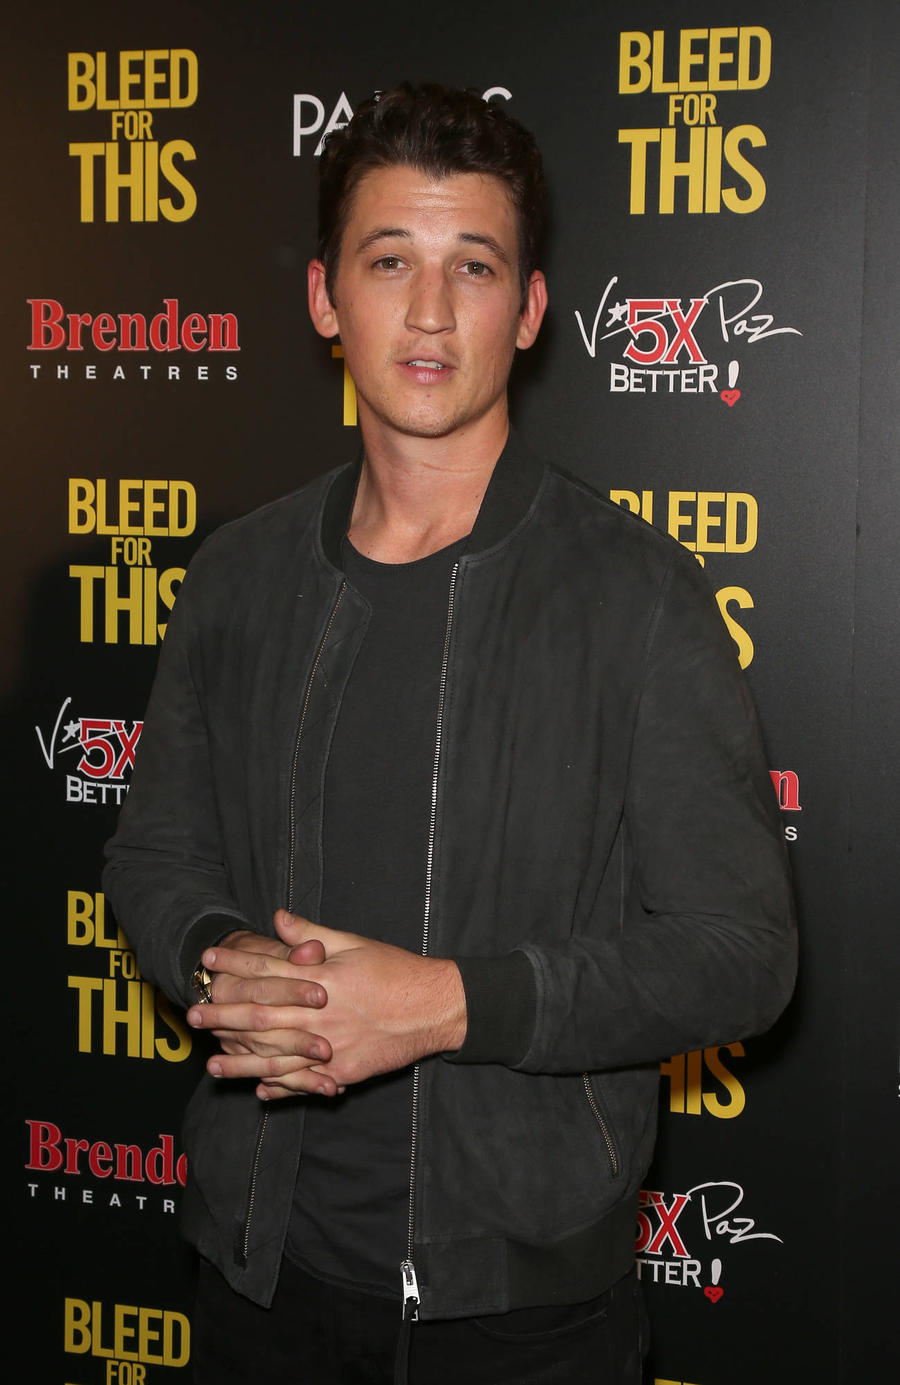 Miles Teller Loved Admiring His Bleed For This Body